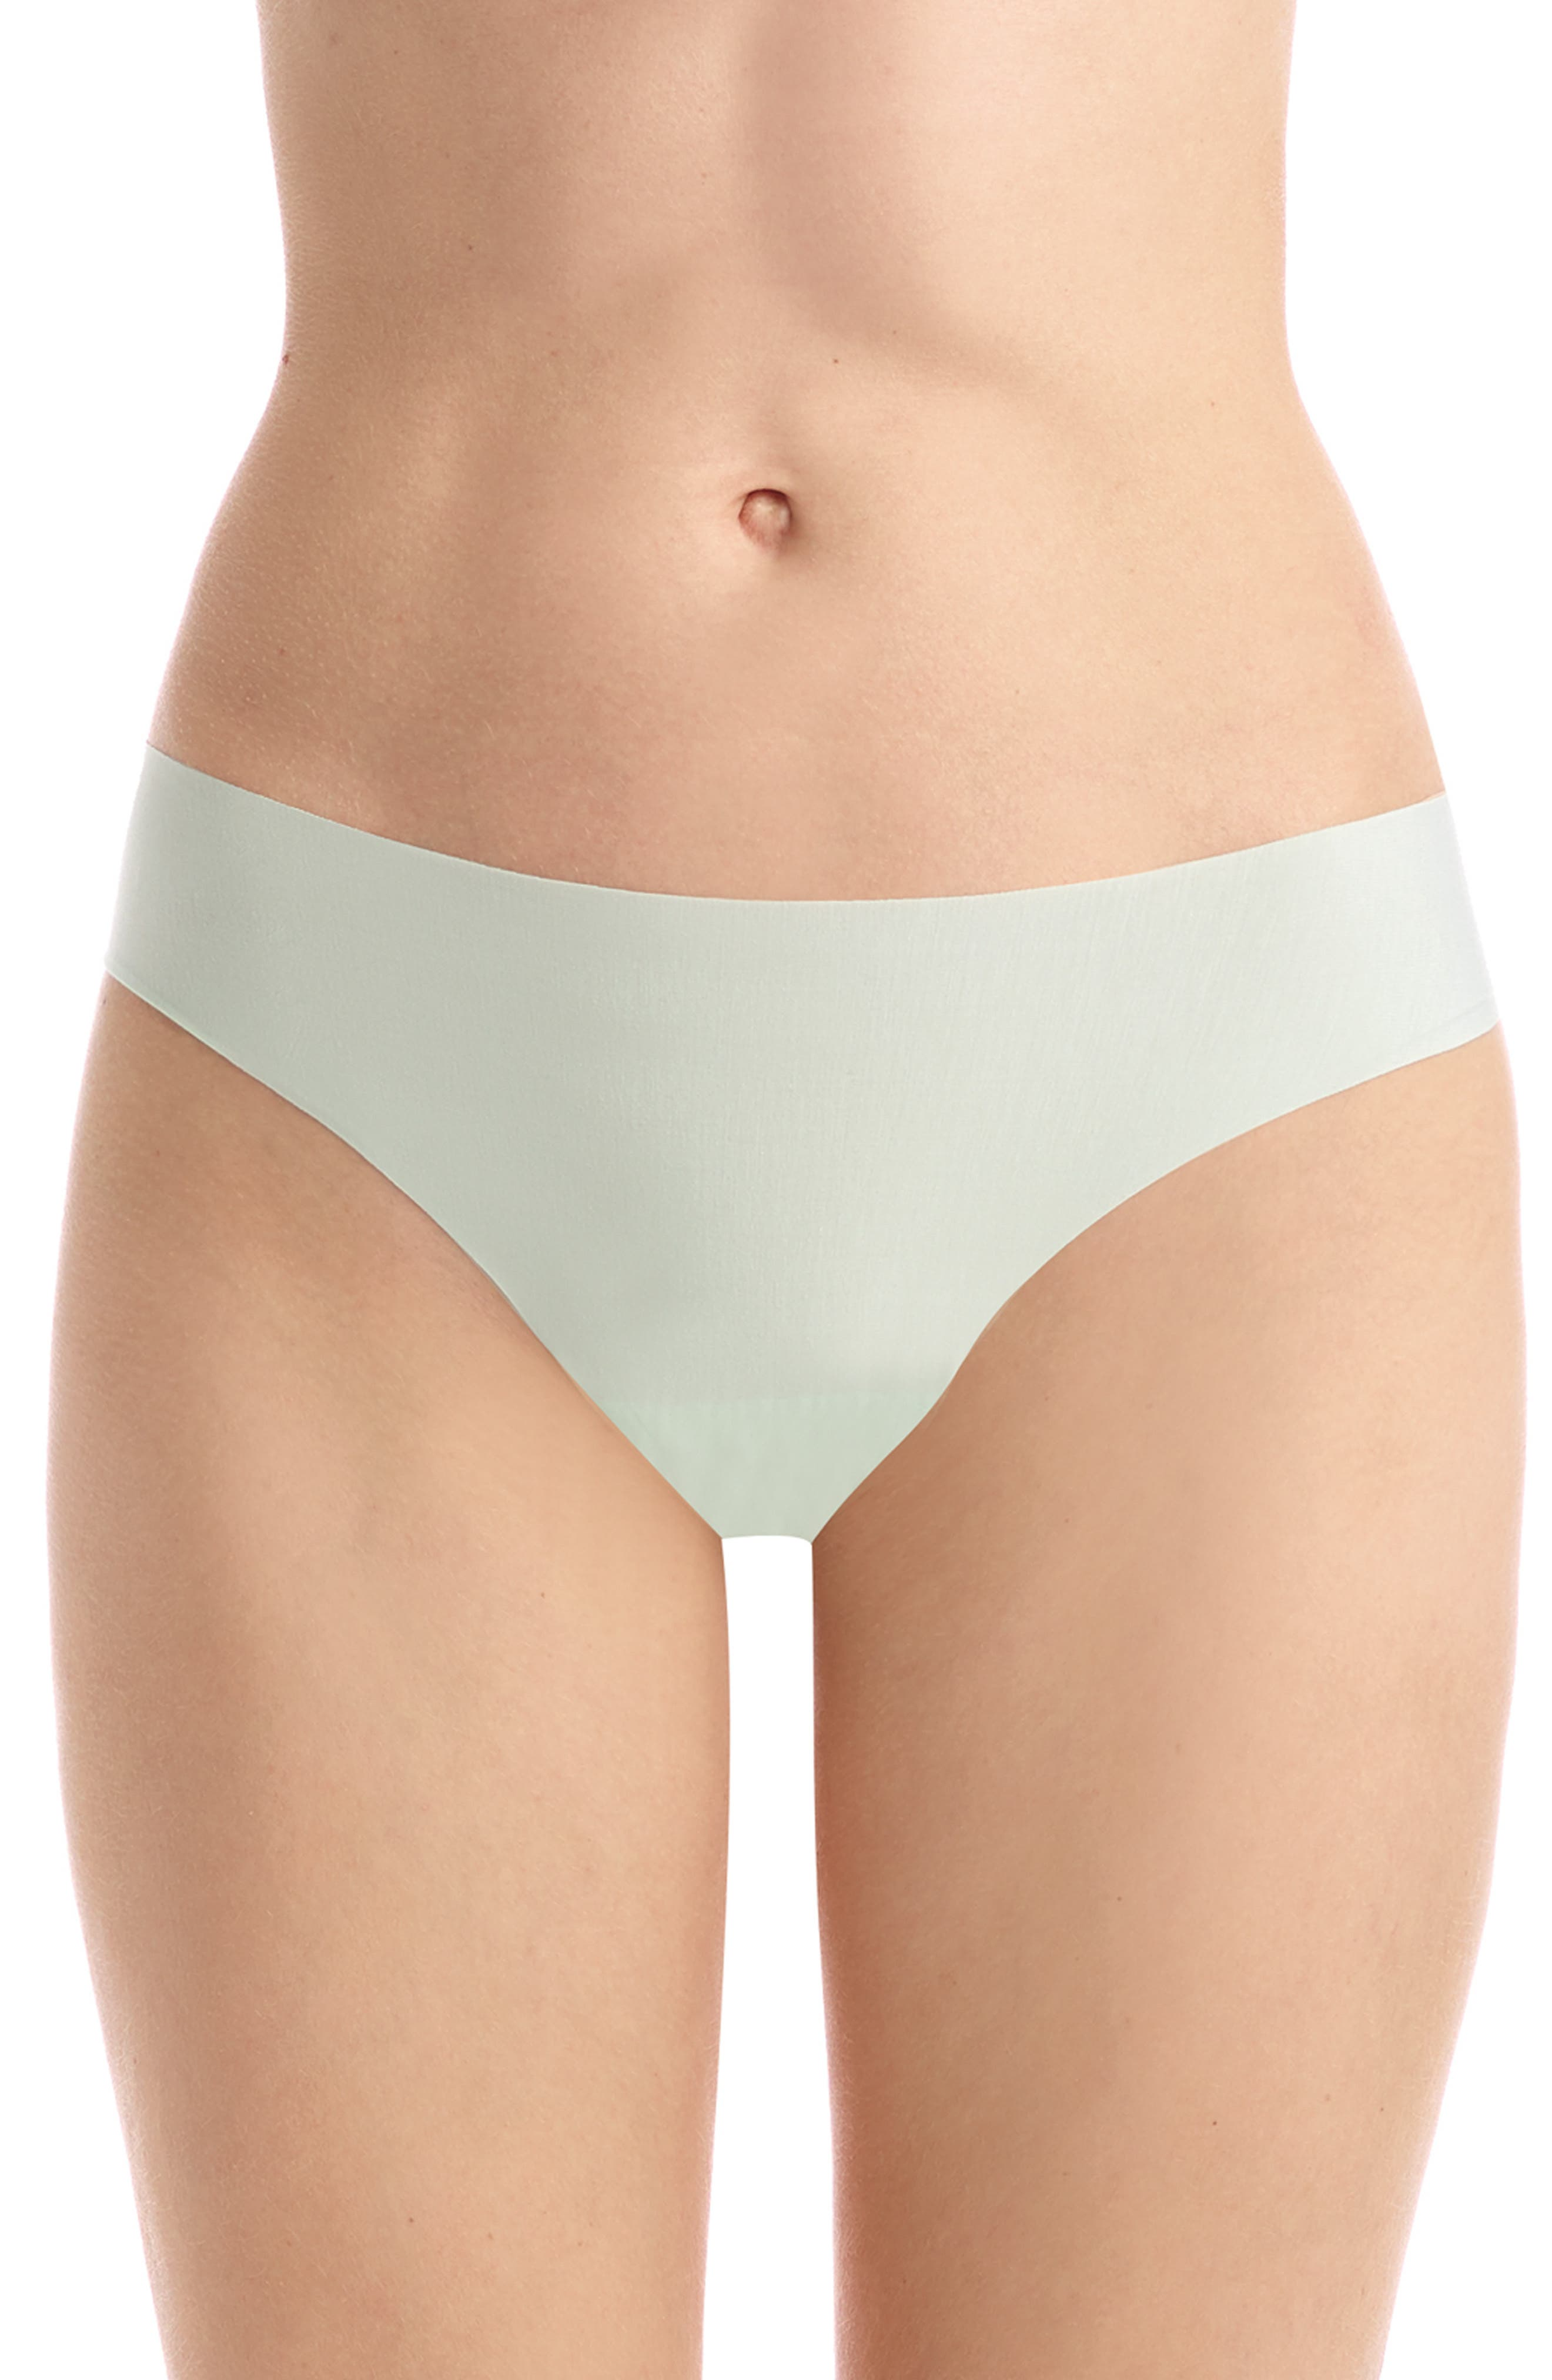 COMMANDO 'Butter' Stretch Modal Thong, Main, color, MINT